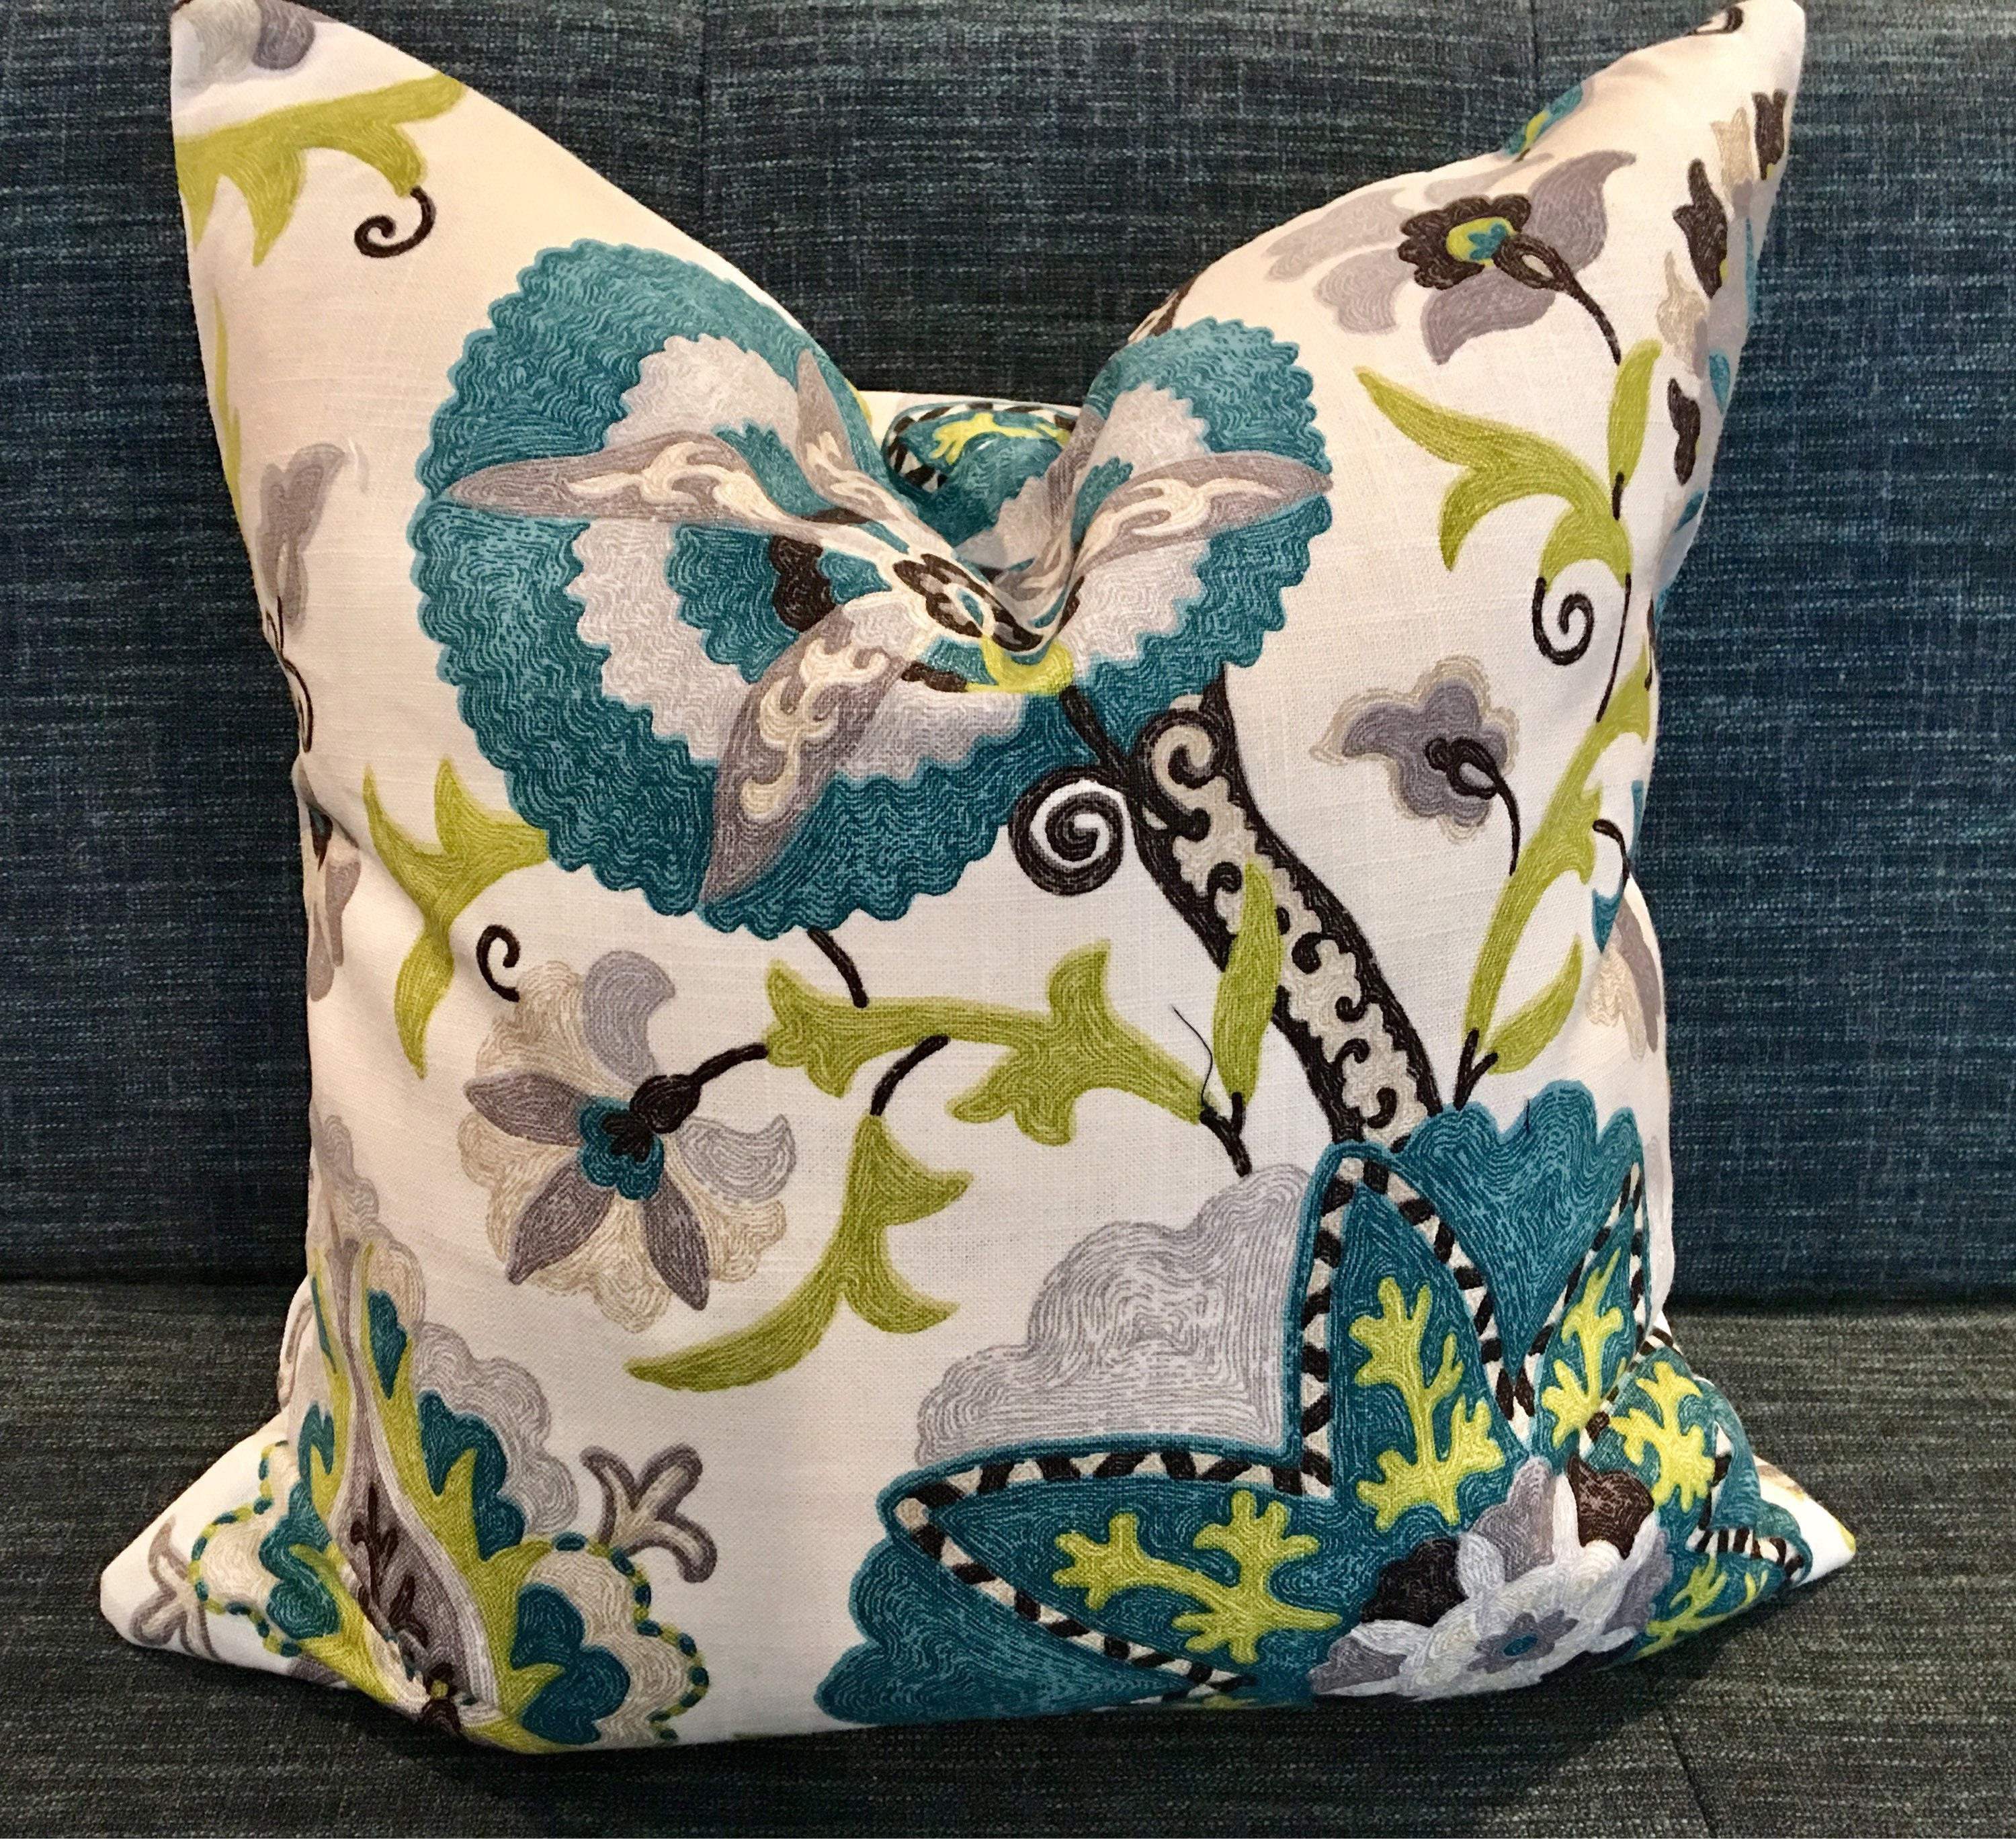 Paisley Floral Pillow Covers / Peacock Blue Chartreuse